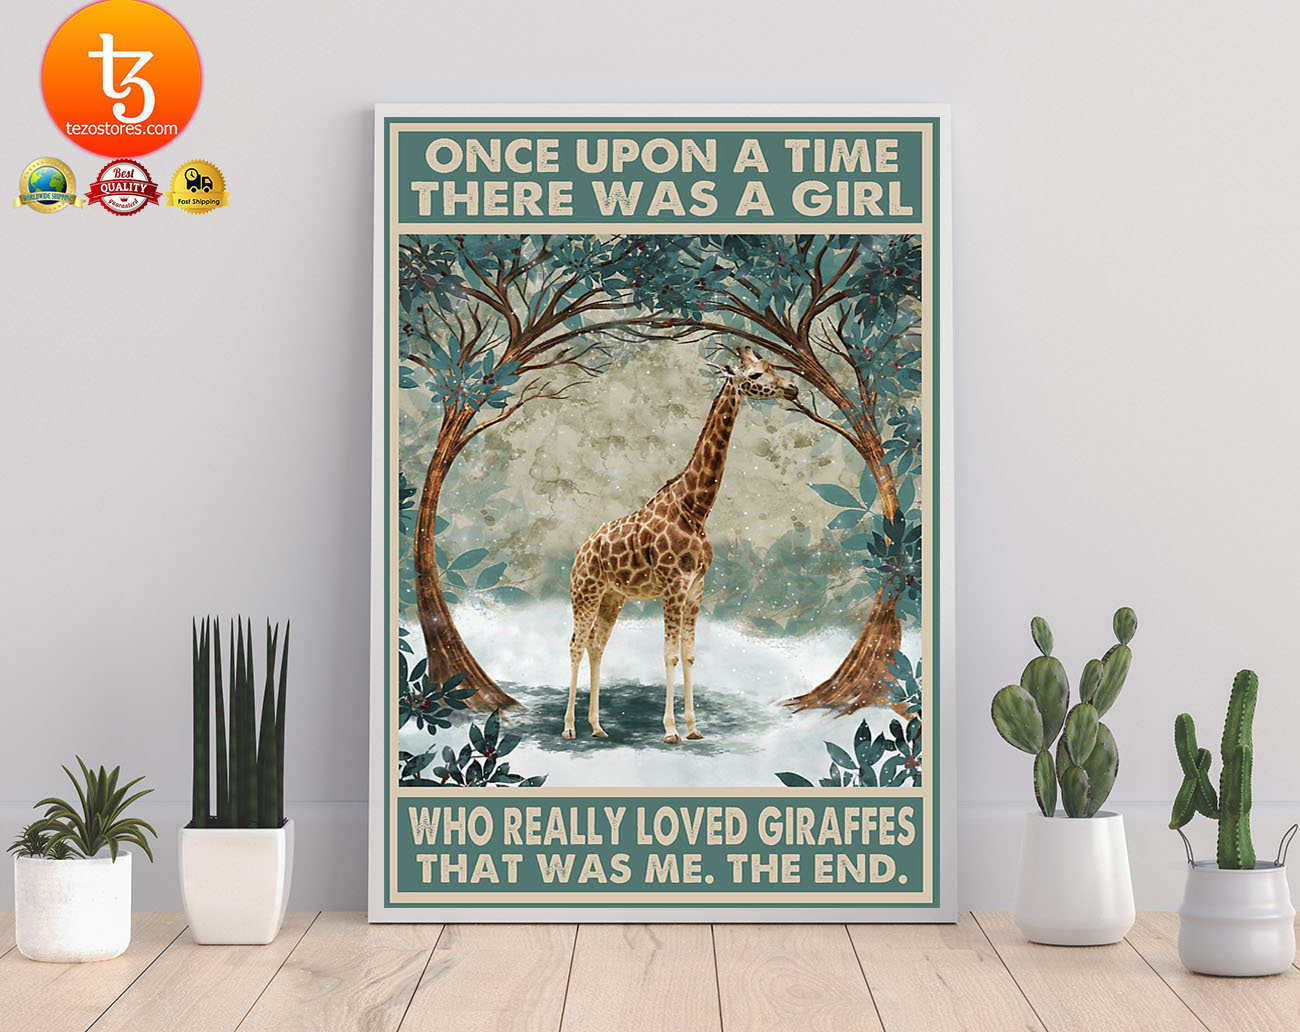 Once upon a time there was a girl who really loved giraffes poster 21